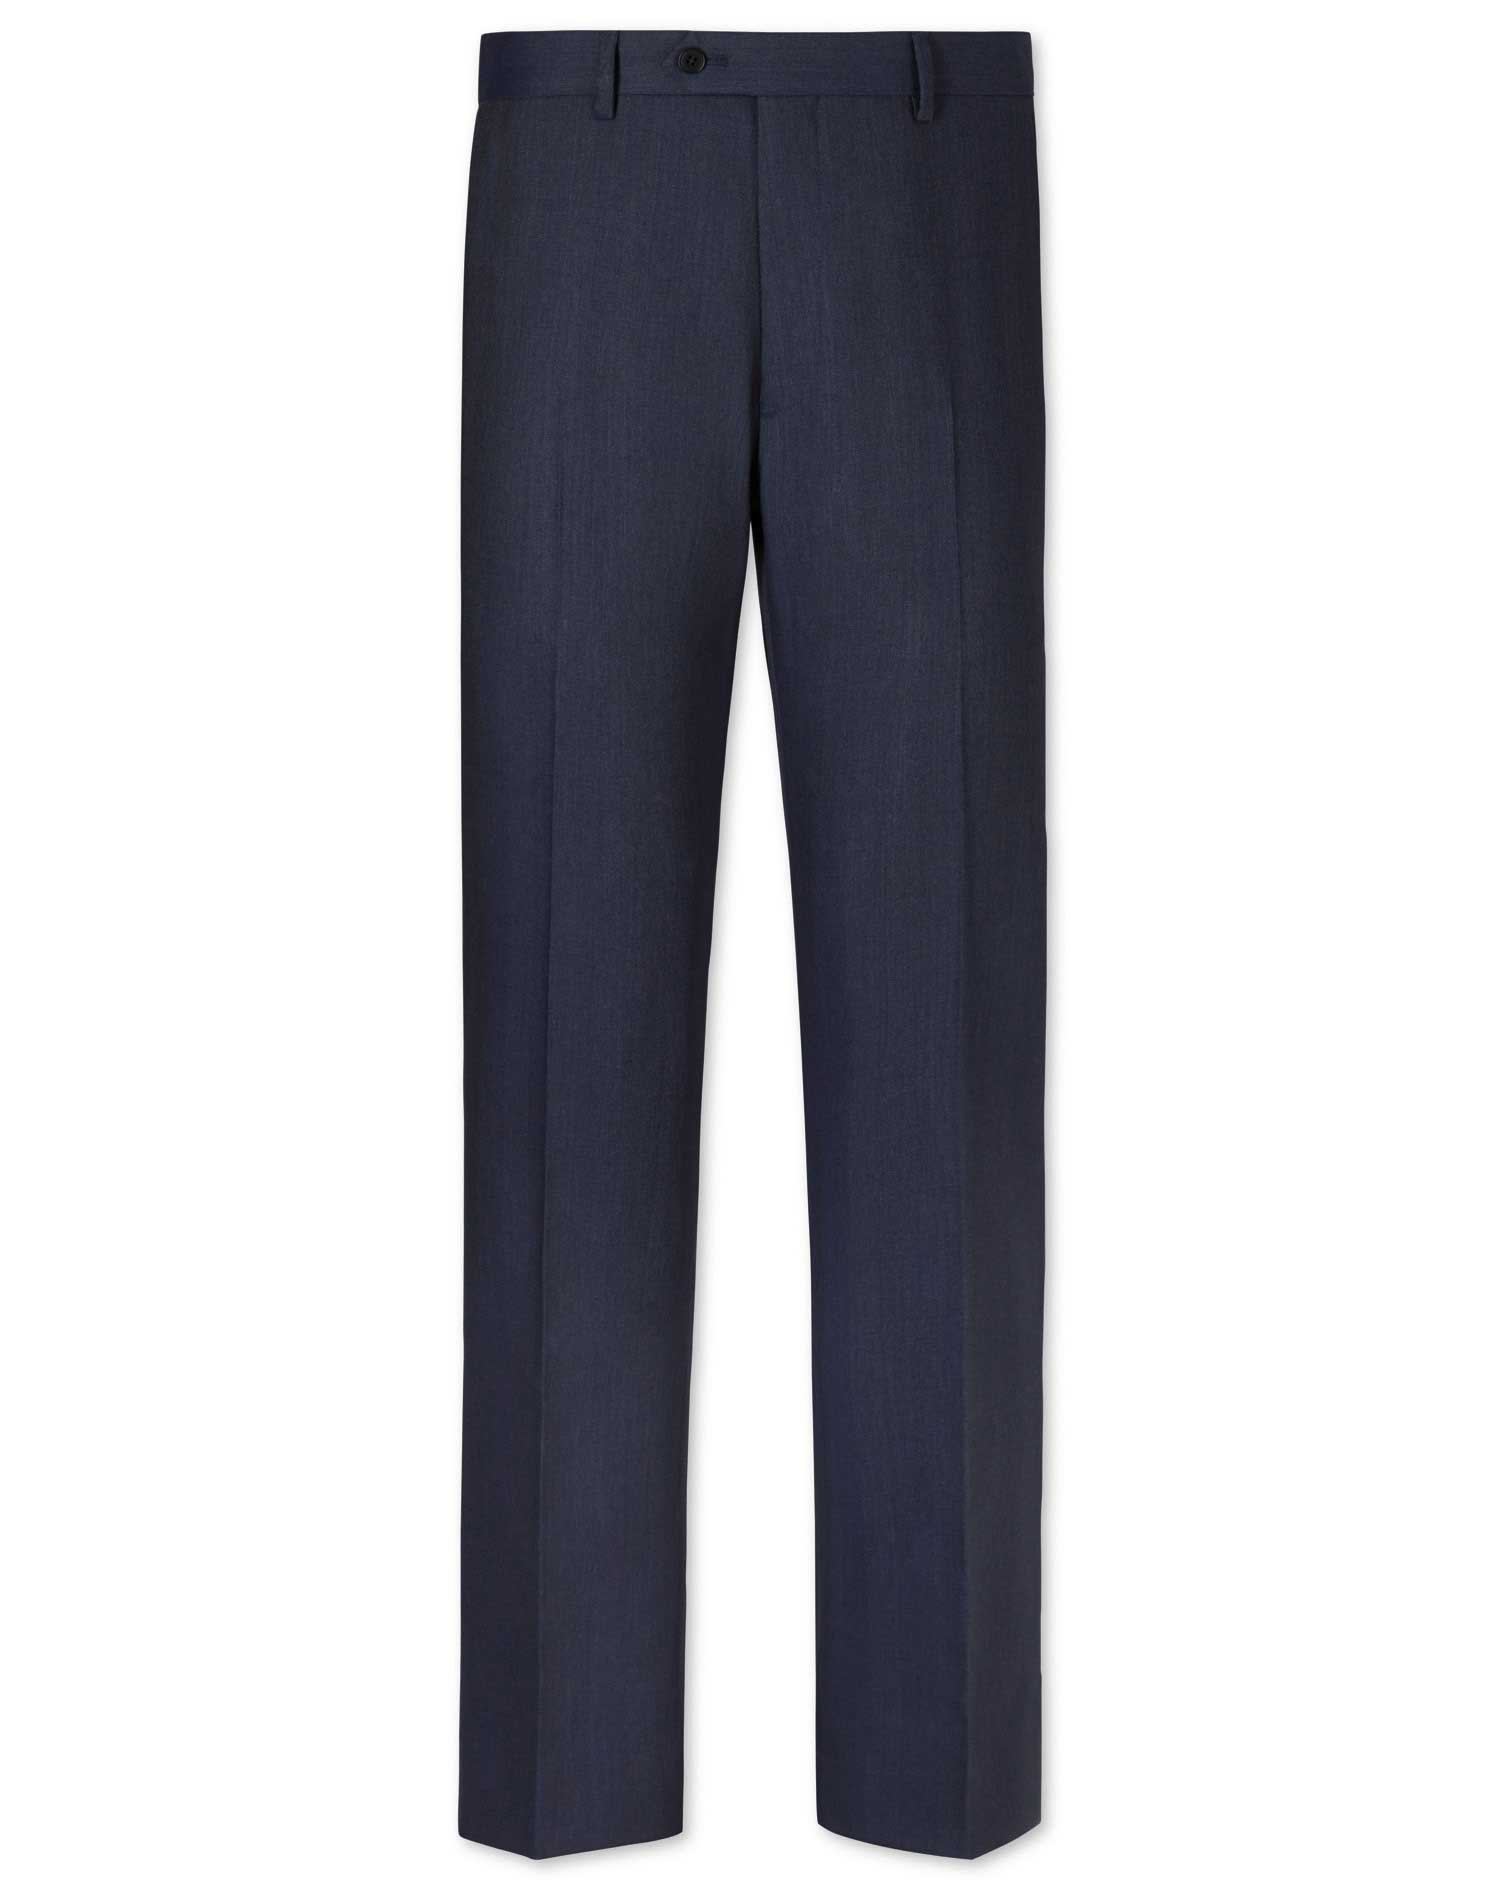 Airforce Blue Slim Fit Herringbone Business Suit Trousers Size W40 L38 by Charles Tyrwhitt